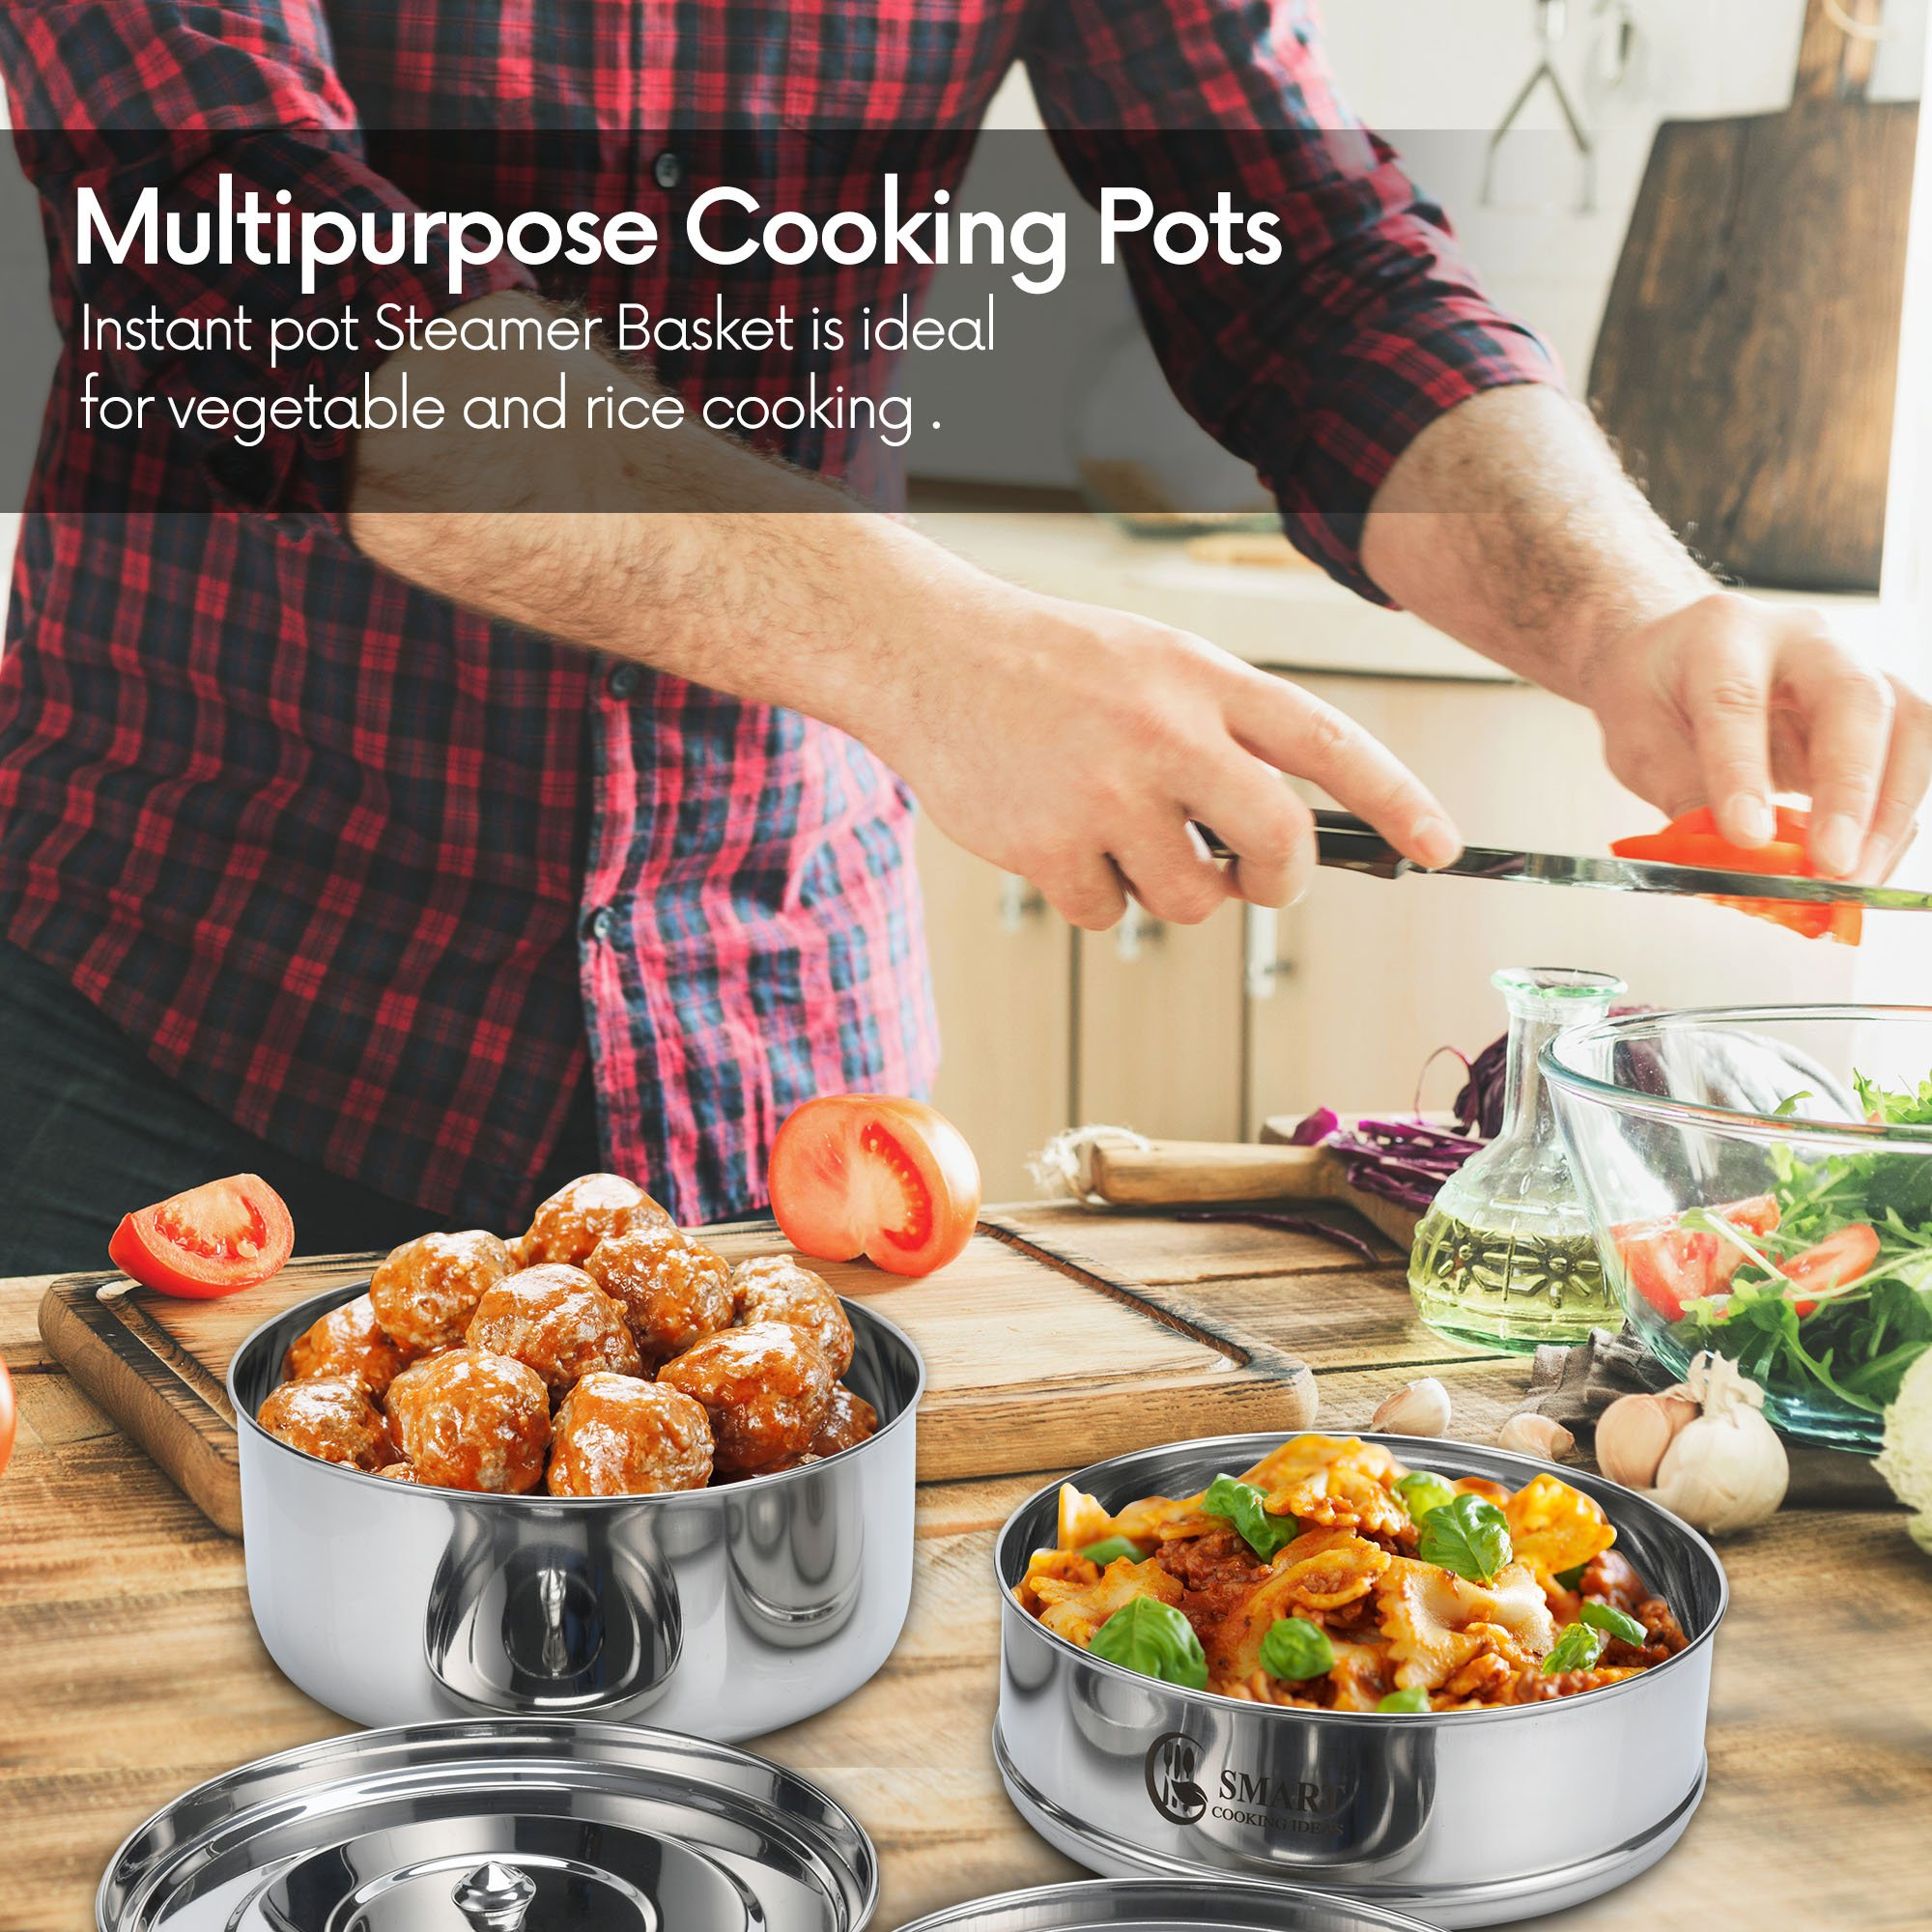 Stackable Stainless Steel Pressure Cooker Steamer Insert Pans with sling - For Instant Pot Accessories 6,8 qt-Baking, Casseroles, Lasagna Pans, Food Cooker, Upgraded Interchangeable Lid-Instapot Pans by SMART COOKING IDEAS (Image #7)